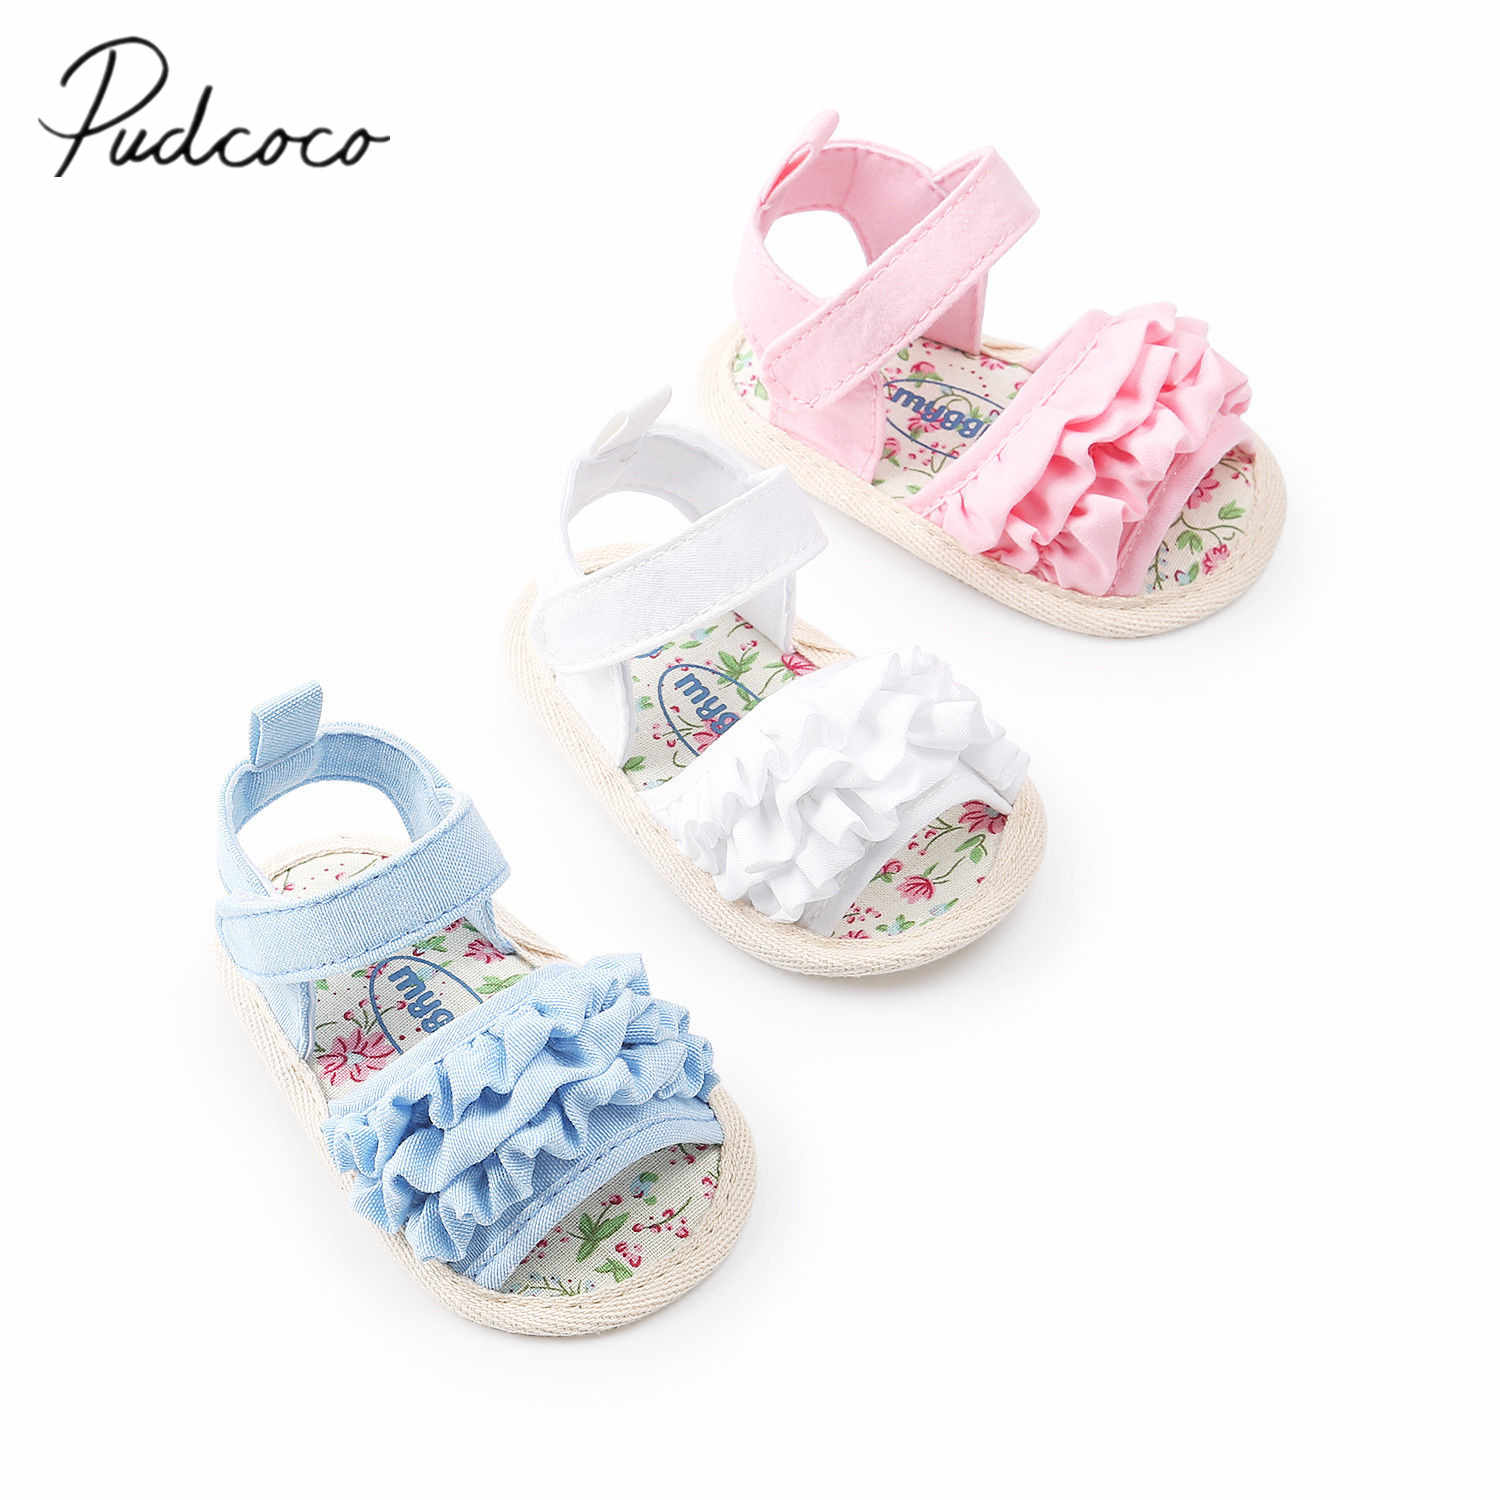 2018 Brand New Toddler Infant Newborn Baby Girl Flower Sandals Summer Casual Crib Shoes Ruffled Floral First Walker 0-18M